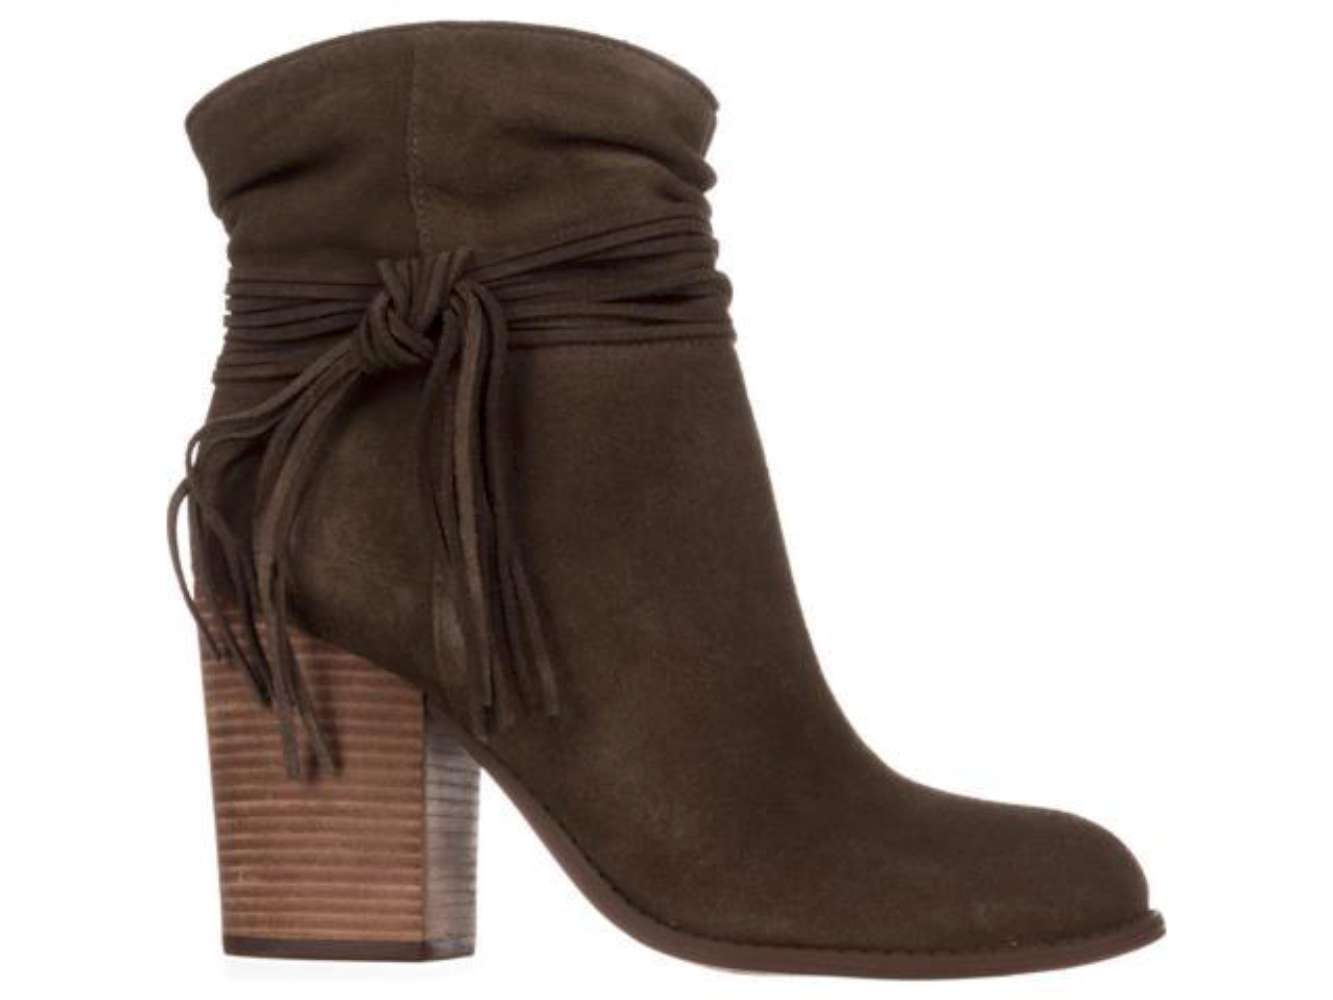 Jessica Simpson Damenschuhe Sesley Suede Stiefel Almond Toe Ankle Fashion Stiefel Suede 755980